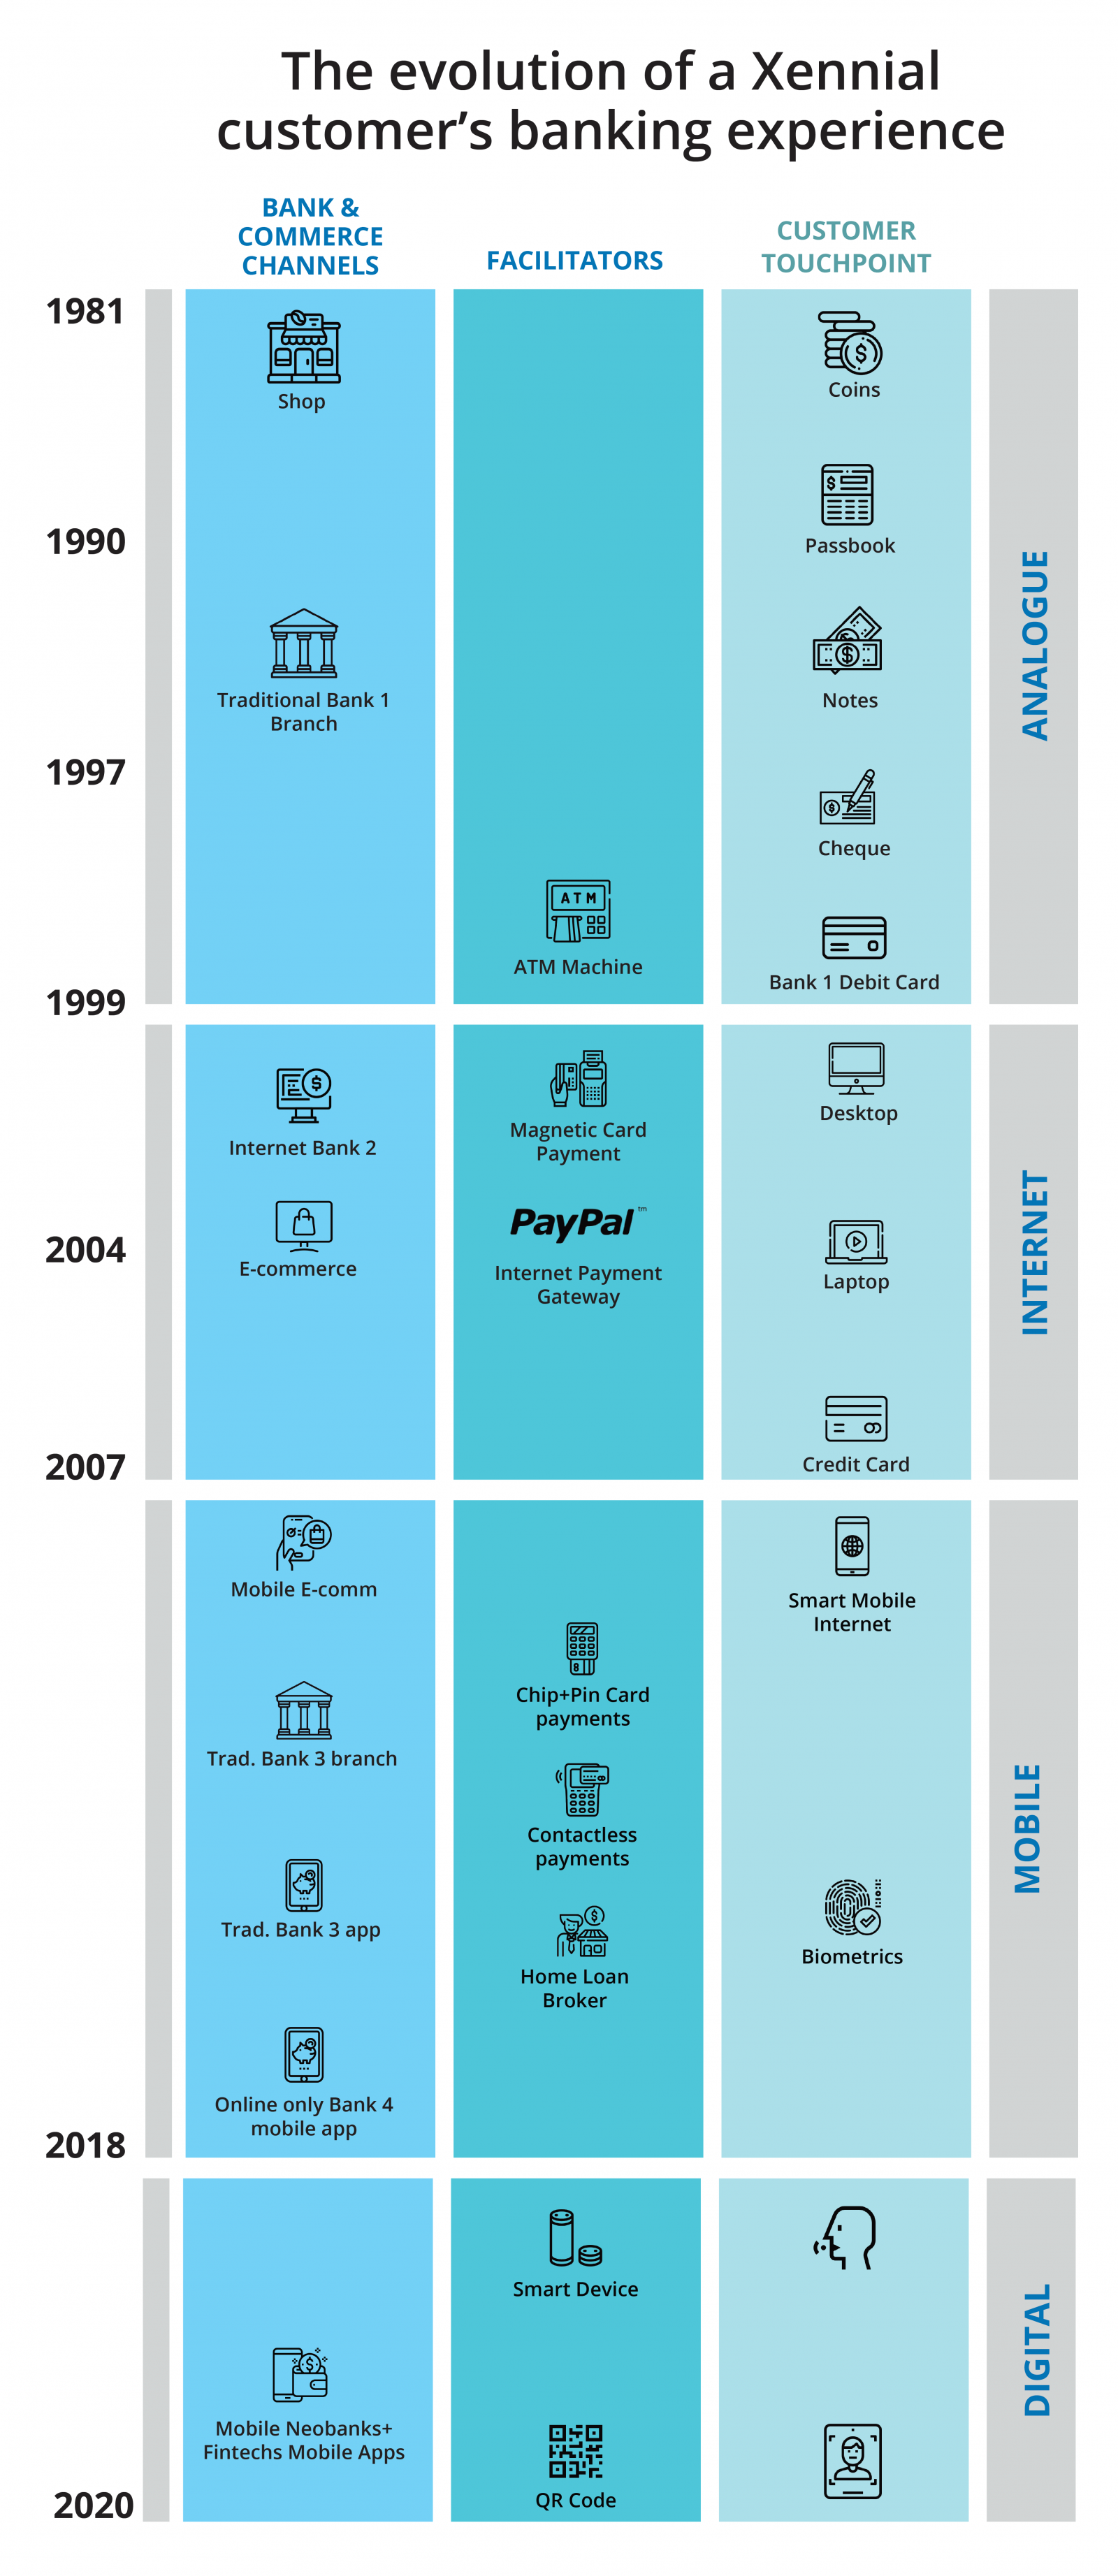 The Xennial customer's banking experience timeline